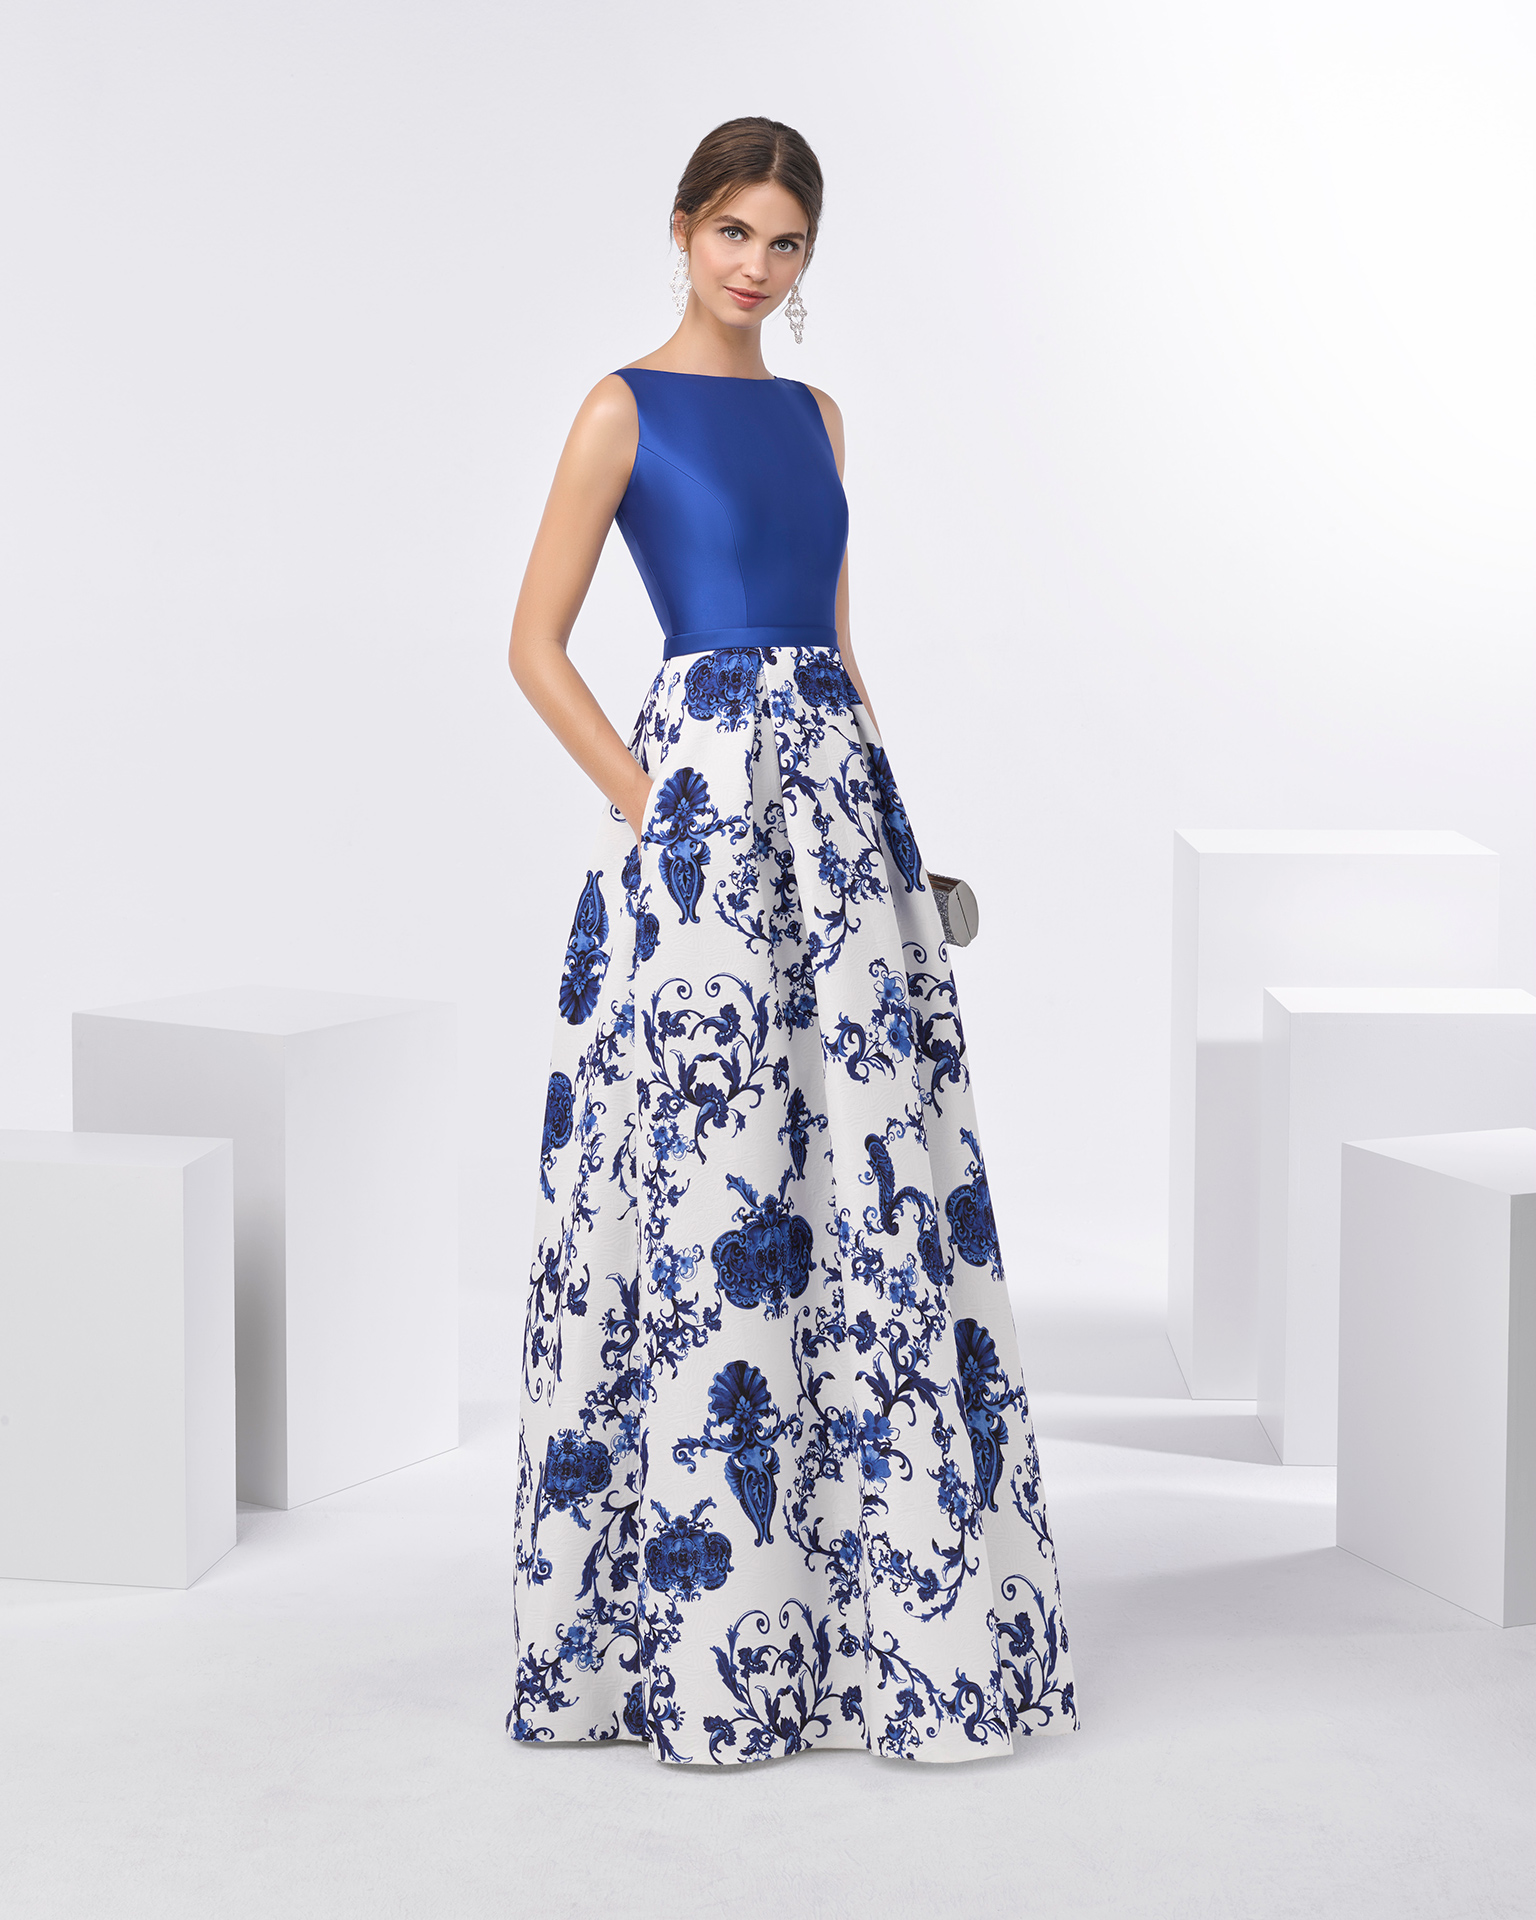 Long cocktail dress with mikado bodice, back neckline with bow detail and structured full brocade skirt with pockets. Available in cobalt. 2018 FIESTA AIRE BARCELONA Collection.